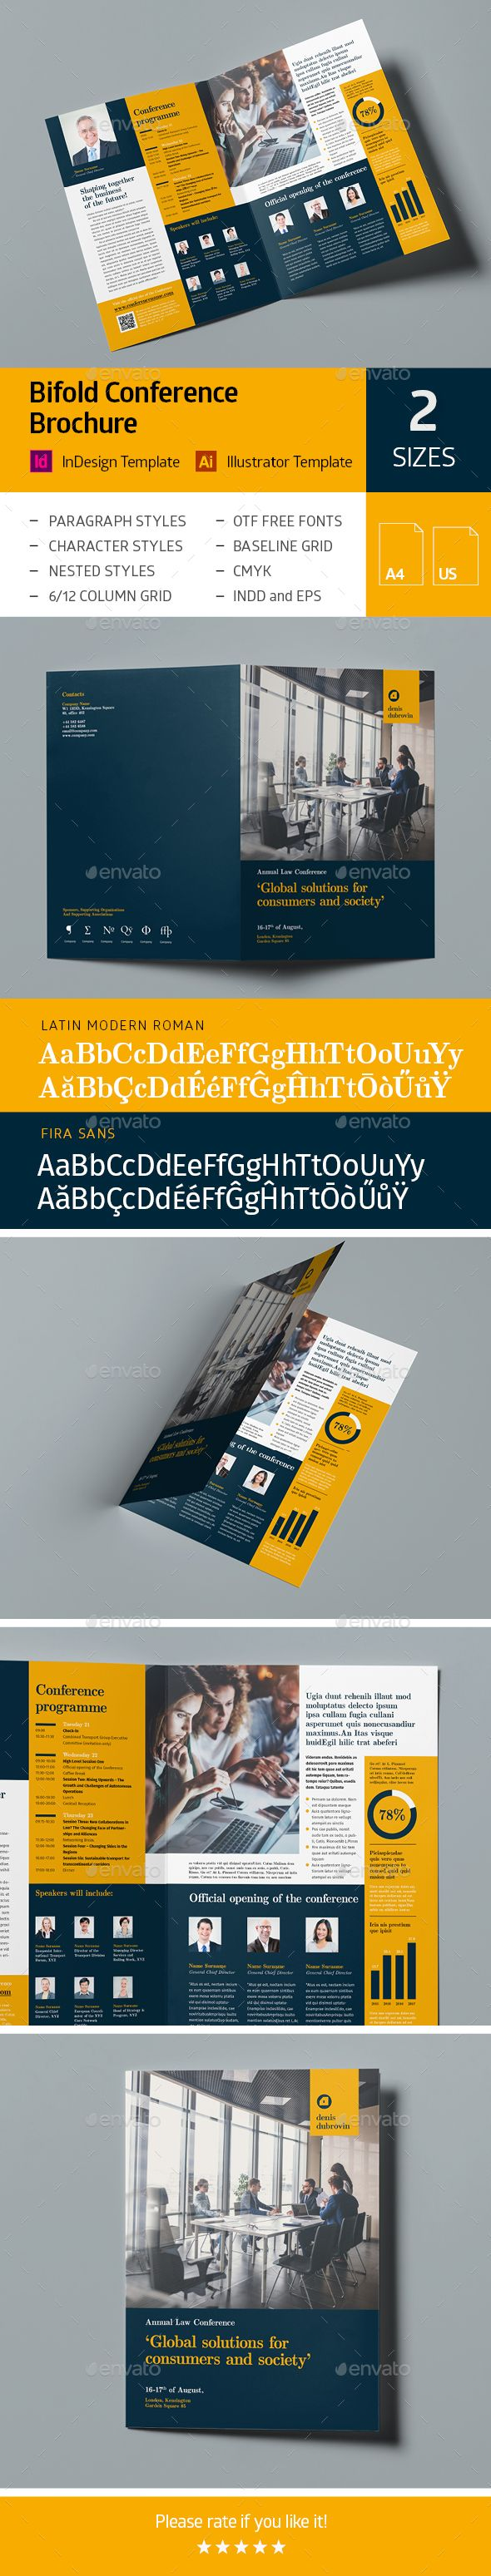 bifold conference brochure template vector eps indesign indd ai